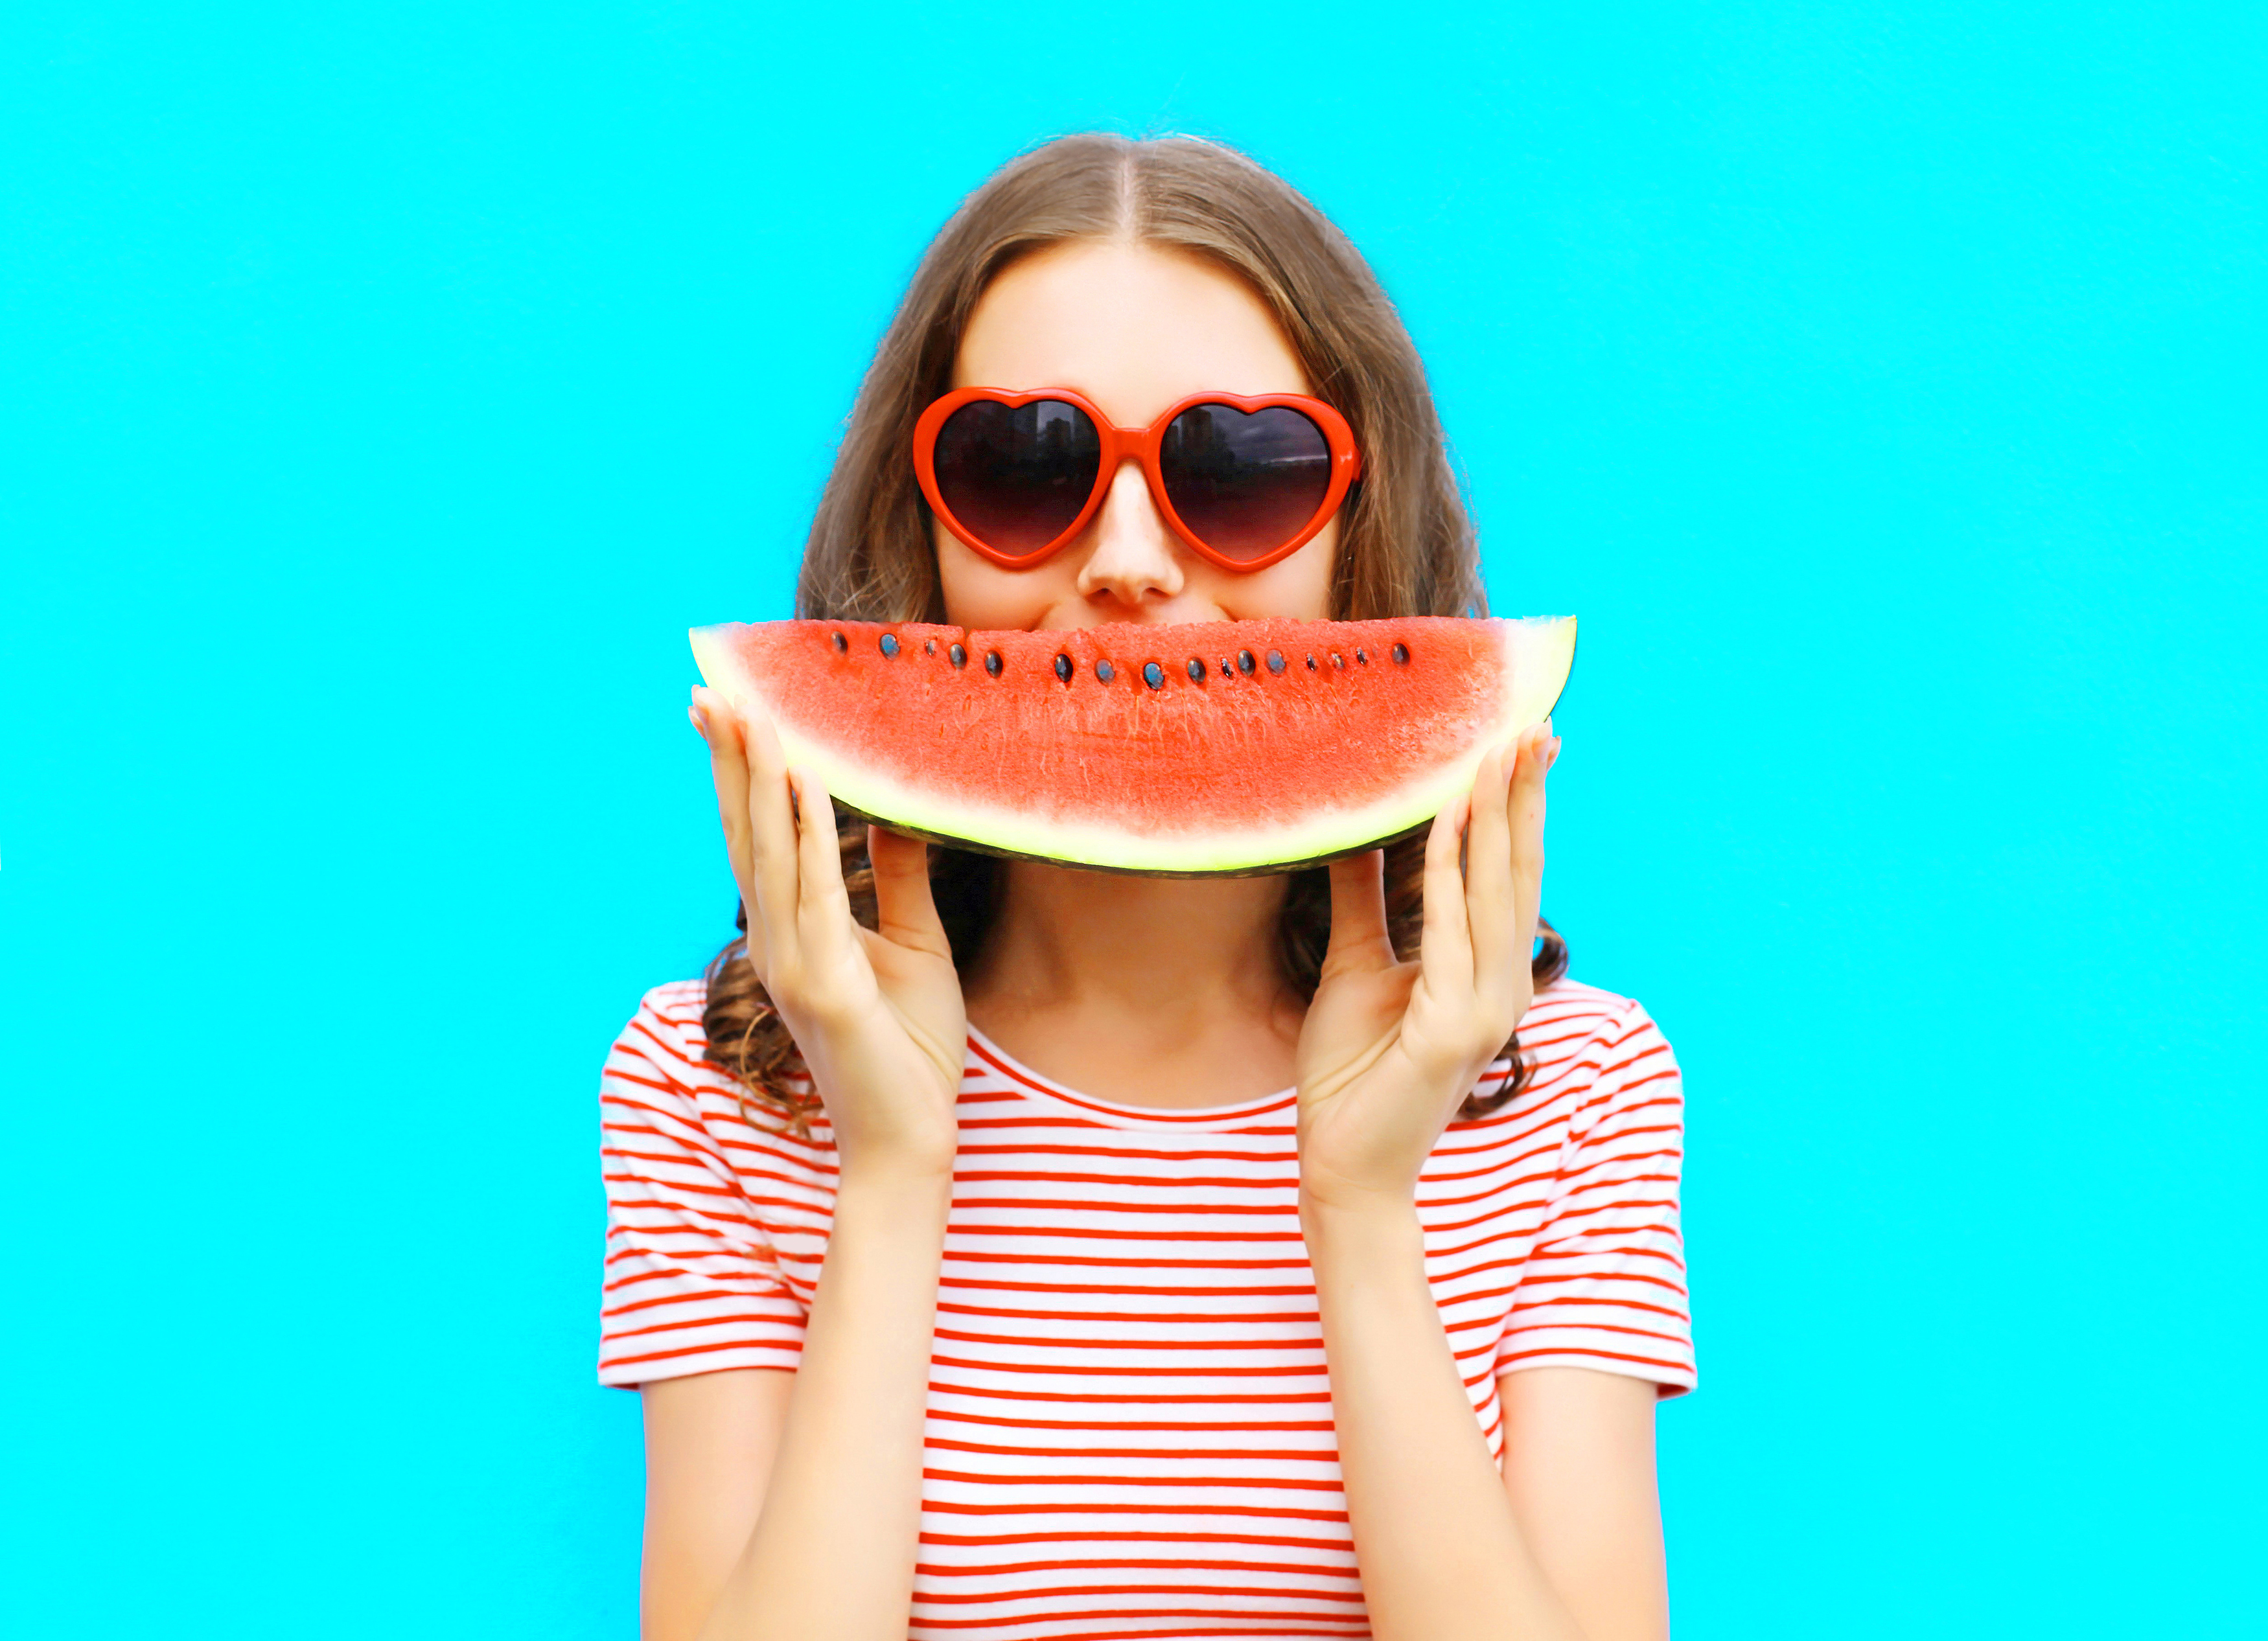 portrait happy young woman is holding slice of watermelon over colorful blue background